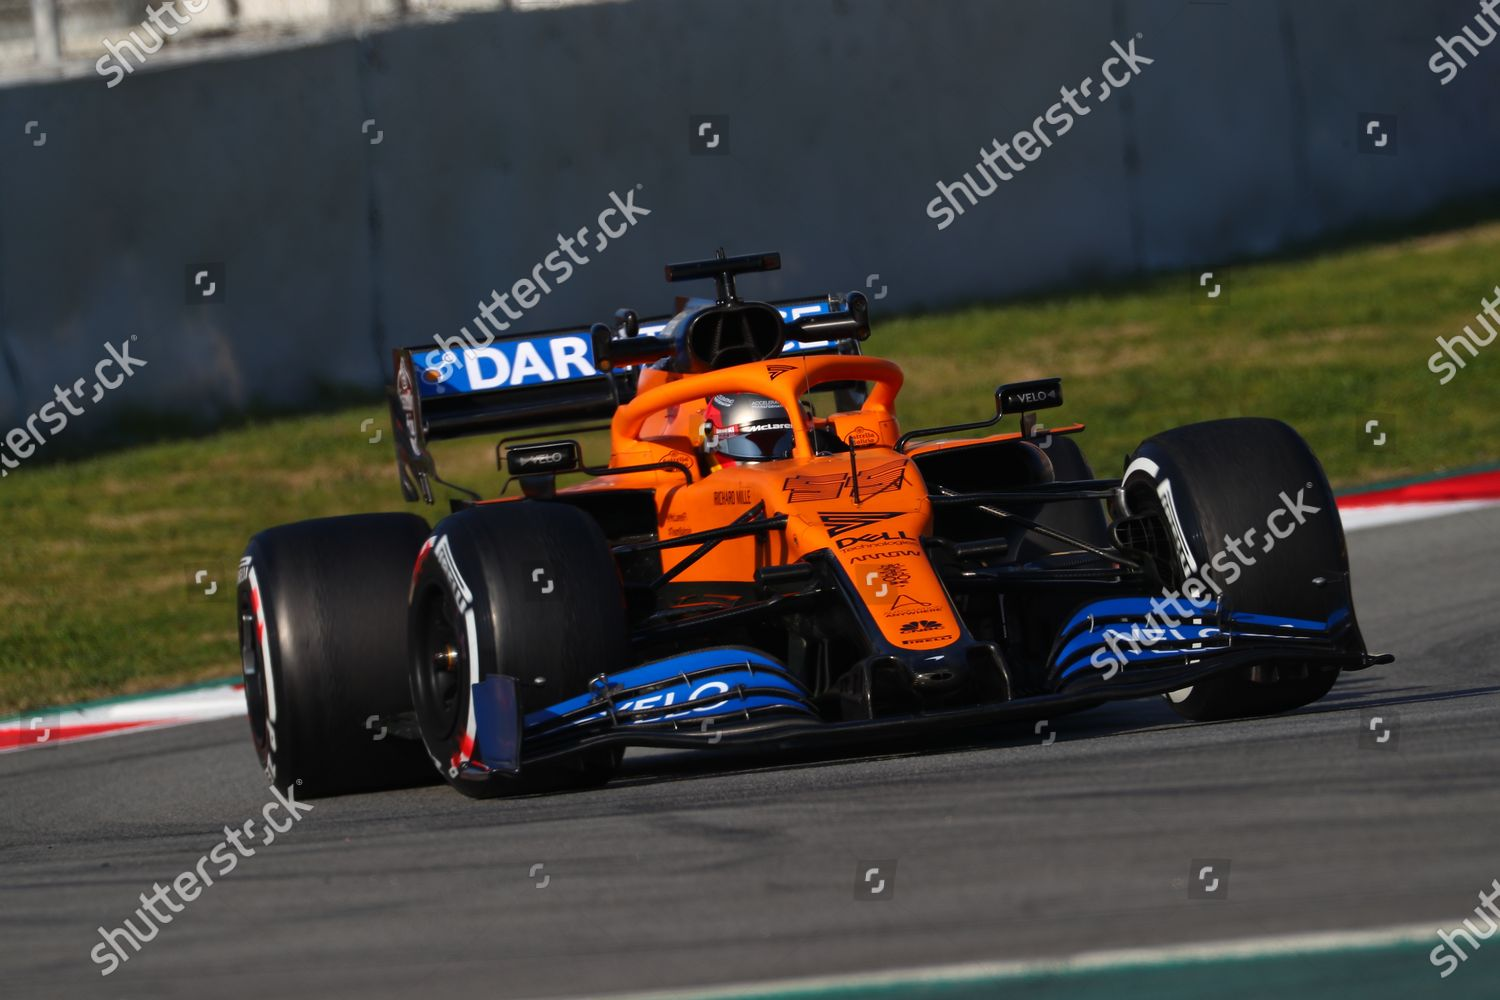 F1 2020 My Driver Career - Sivu 3 Formula-1-pre-season-winter-testing-day-3-barcelona-spain-shutterstock-editorial-10563340b